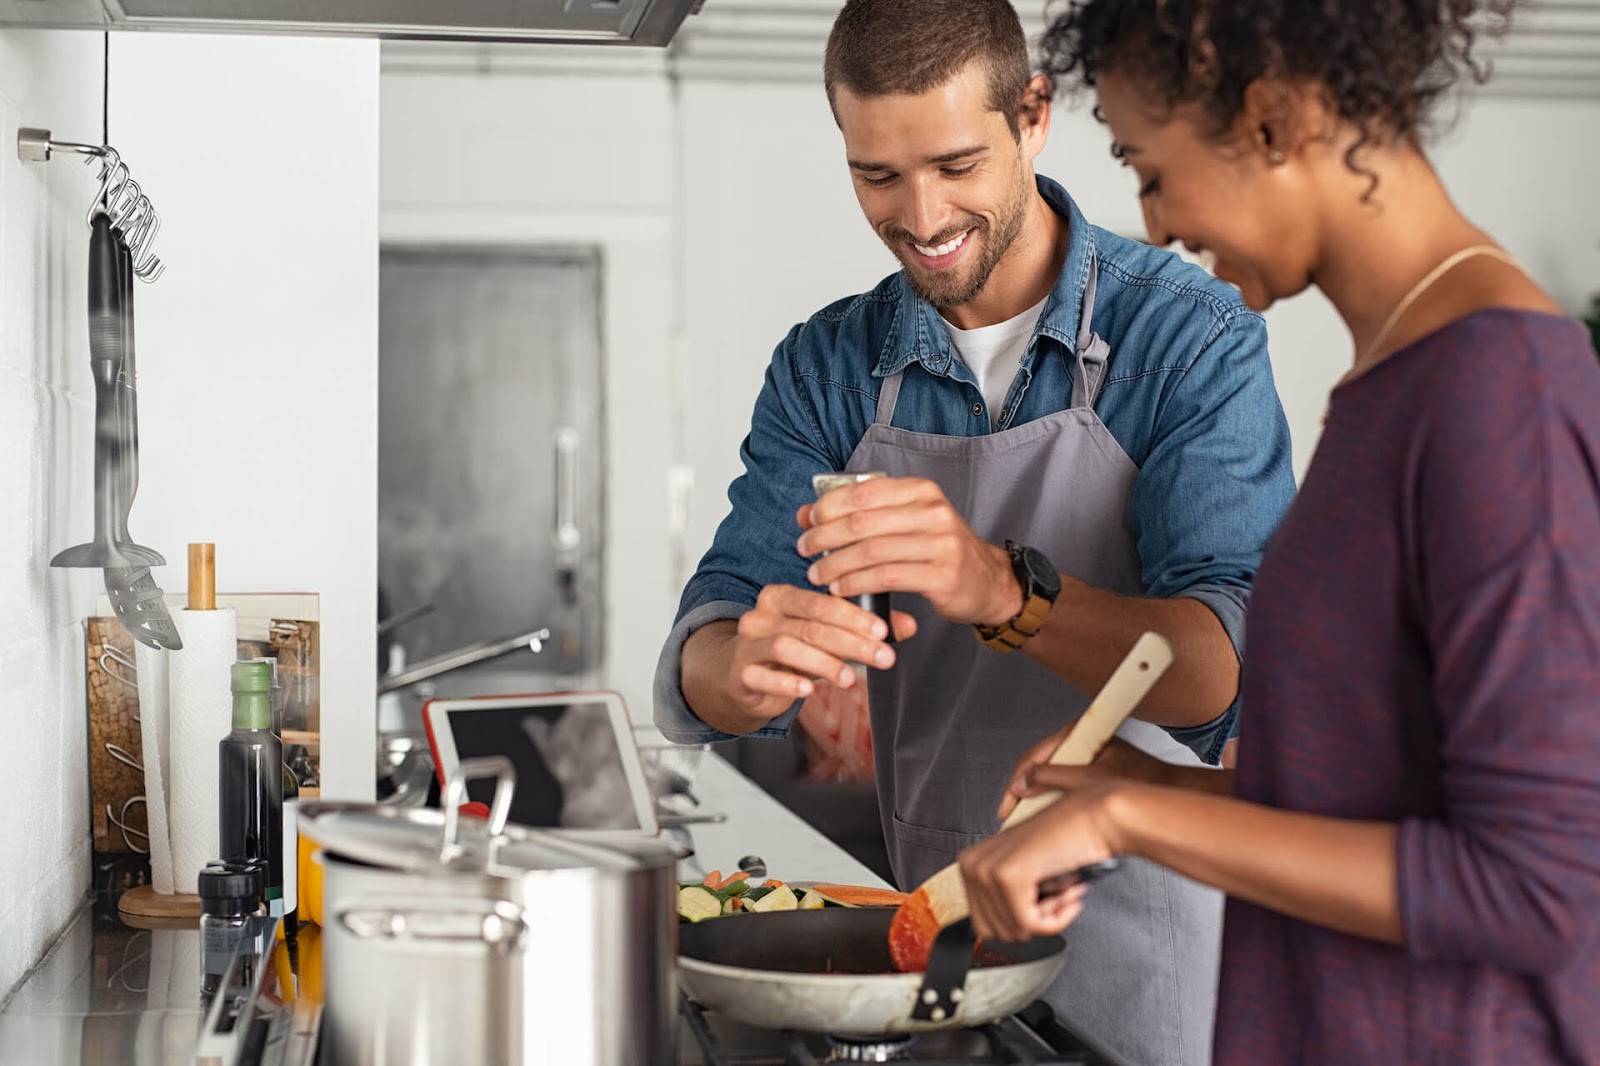 Man and woman cooking in the kitchen together